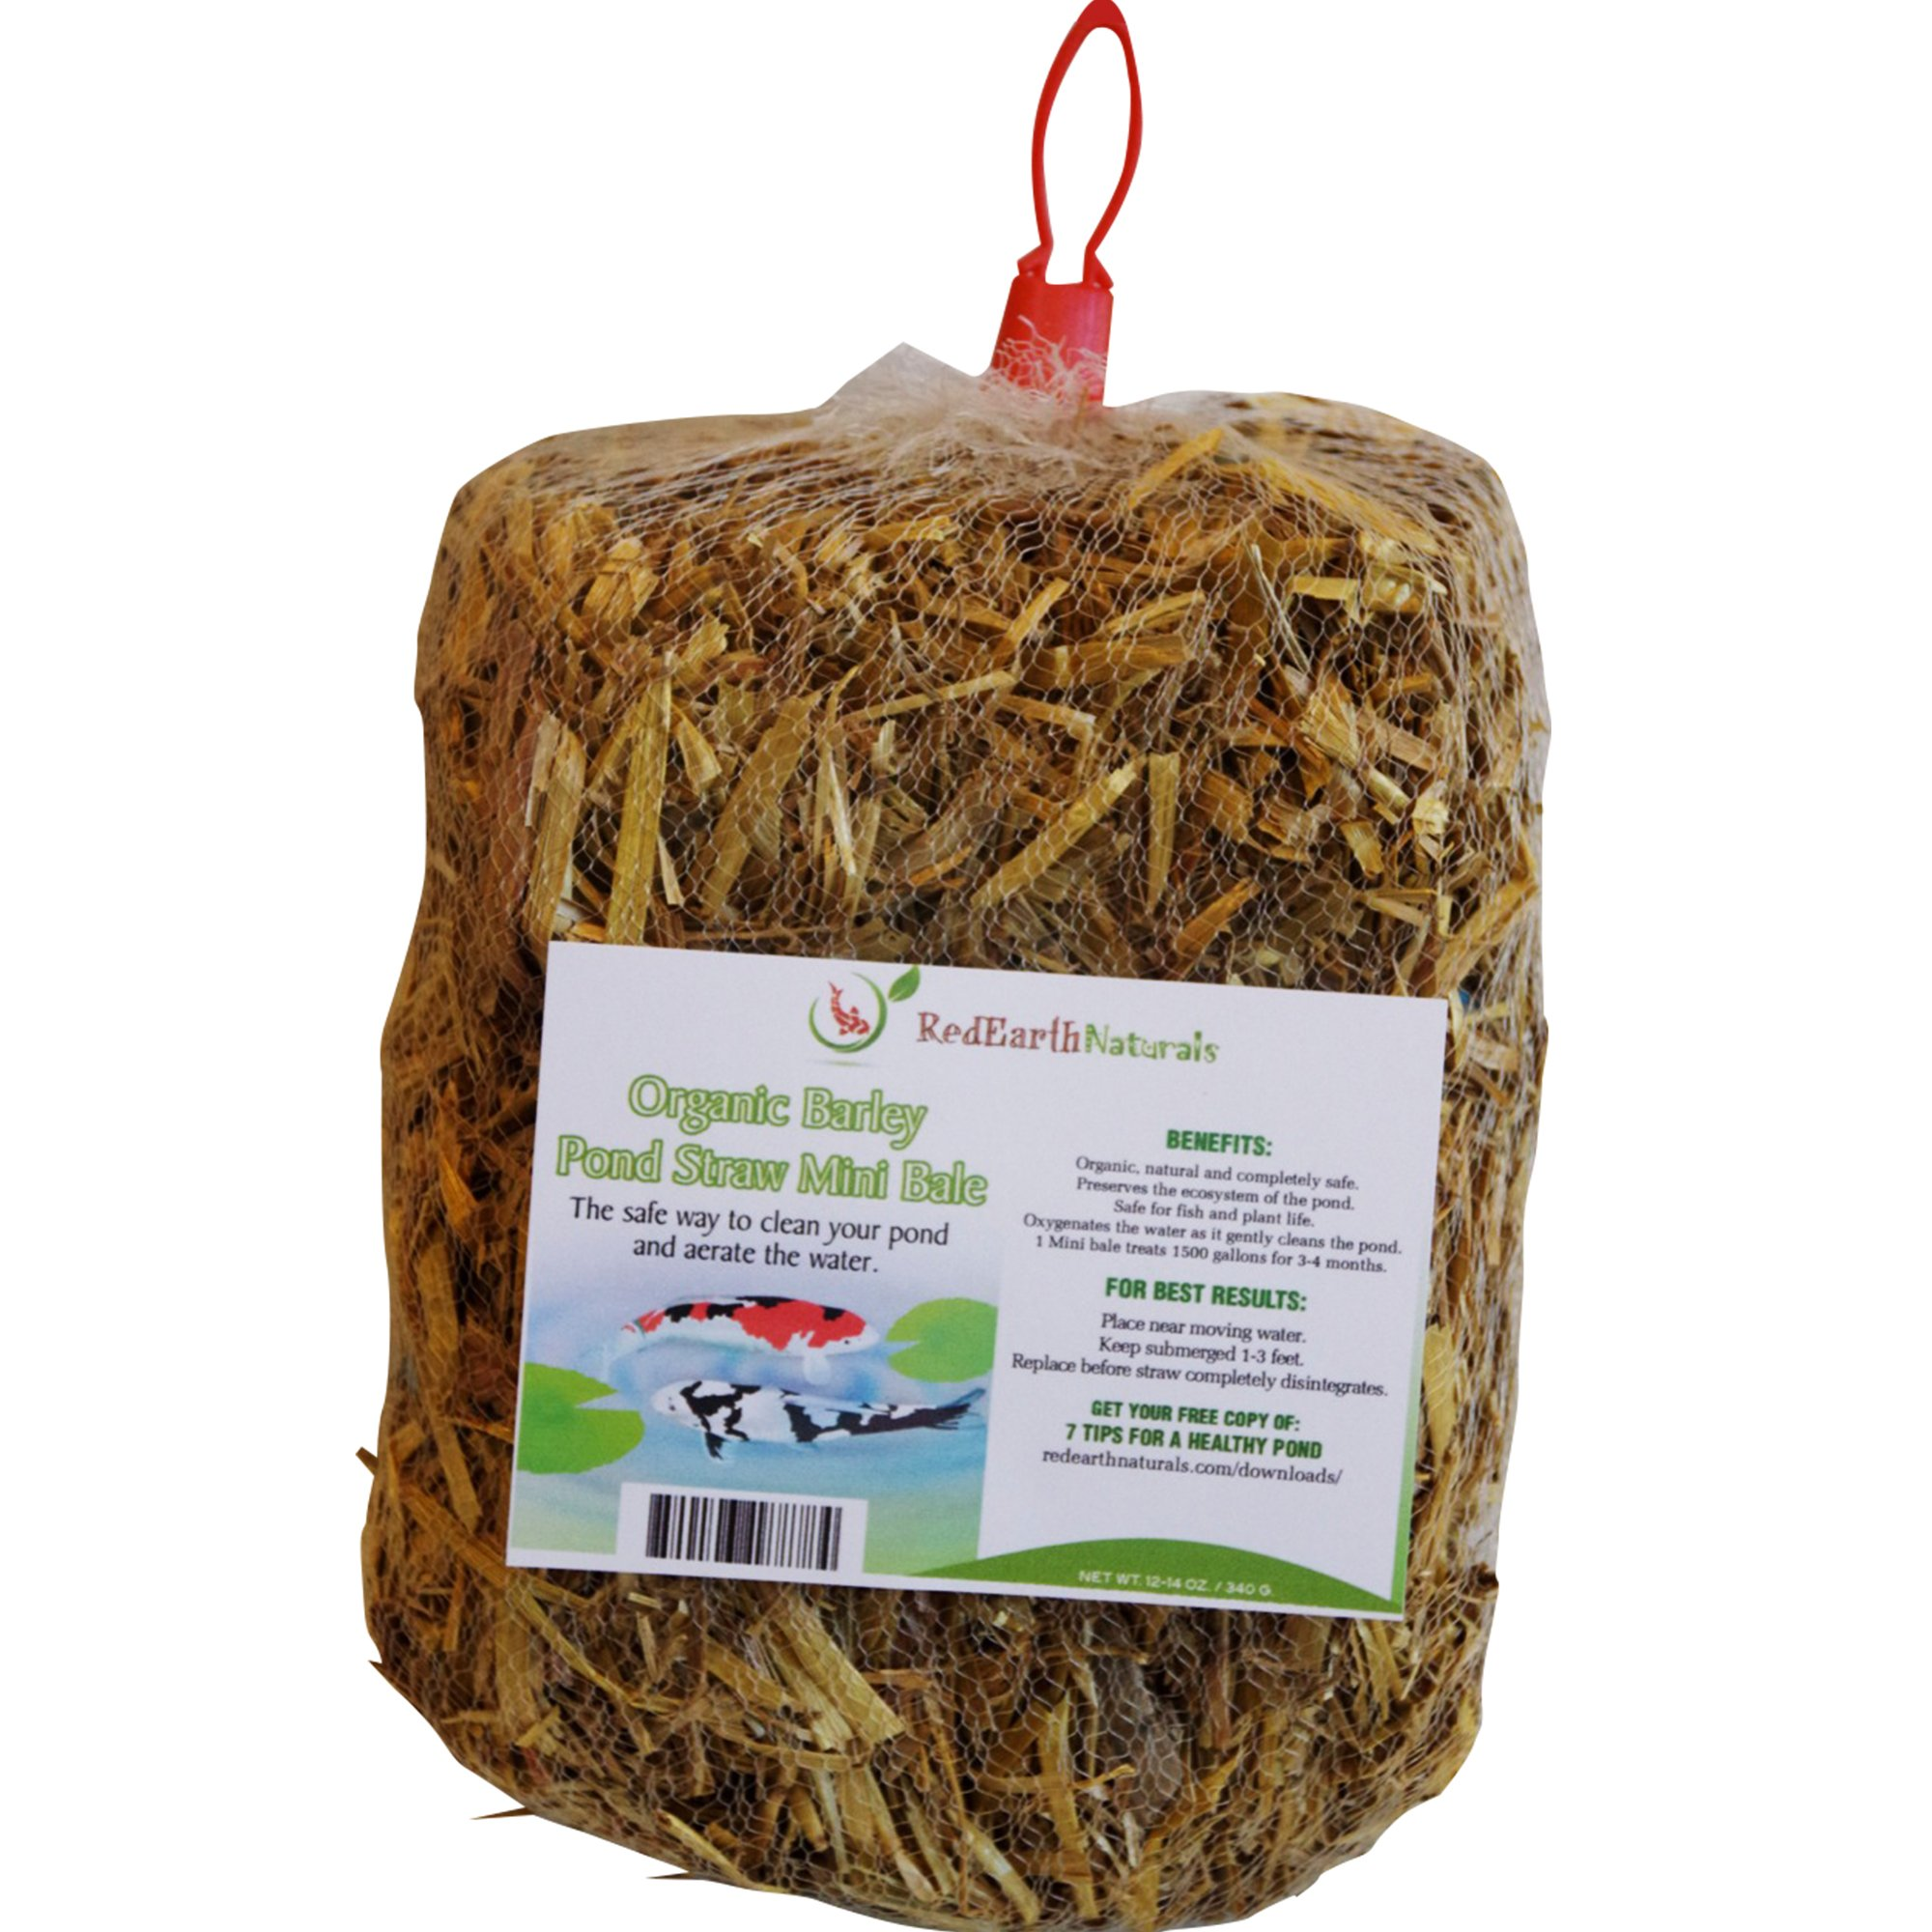 POND CLARIFIER for PROUD KOI POND OWNERS - Premium & Organic - Barley Straw for Ponds Mini Bale - Cleans Koi Ponds & Water Gardens the Safe Natural Way by Red Earth Naturals